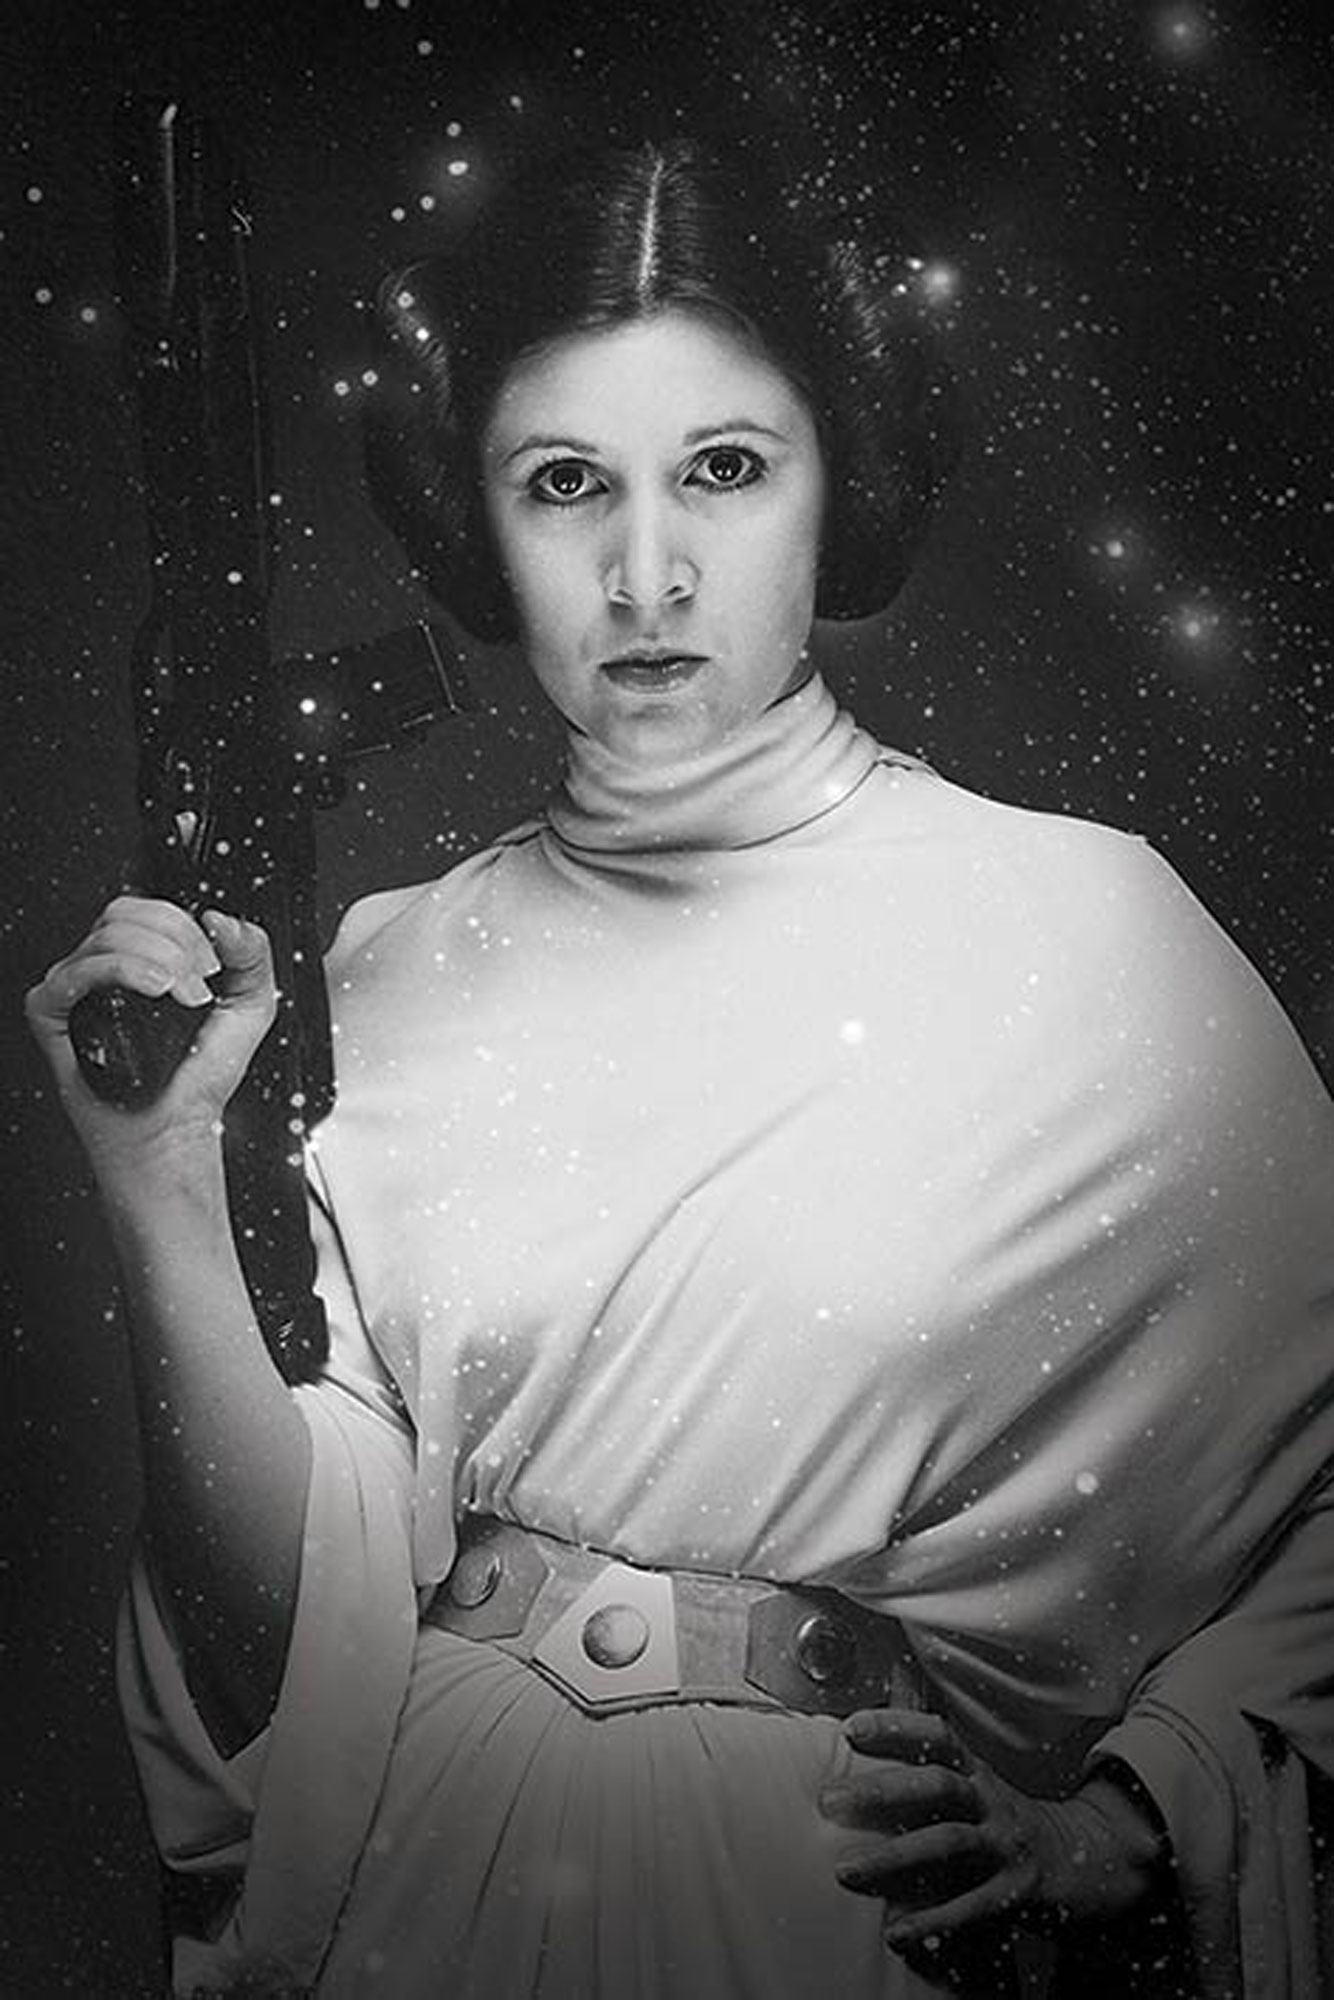 Star Wars - Poster - Princess Leia Stars